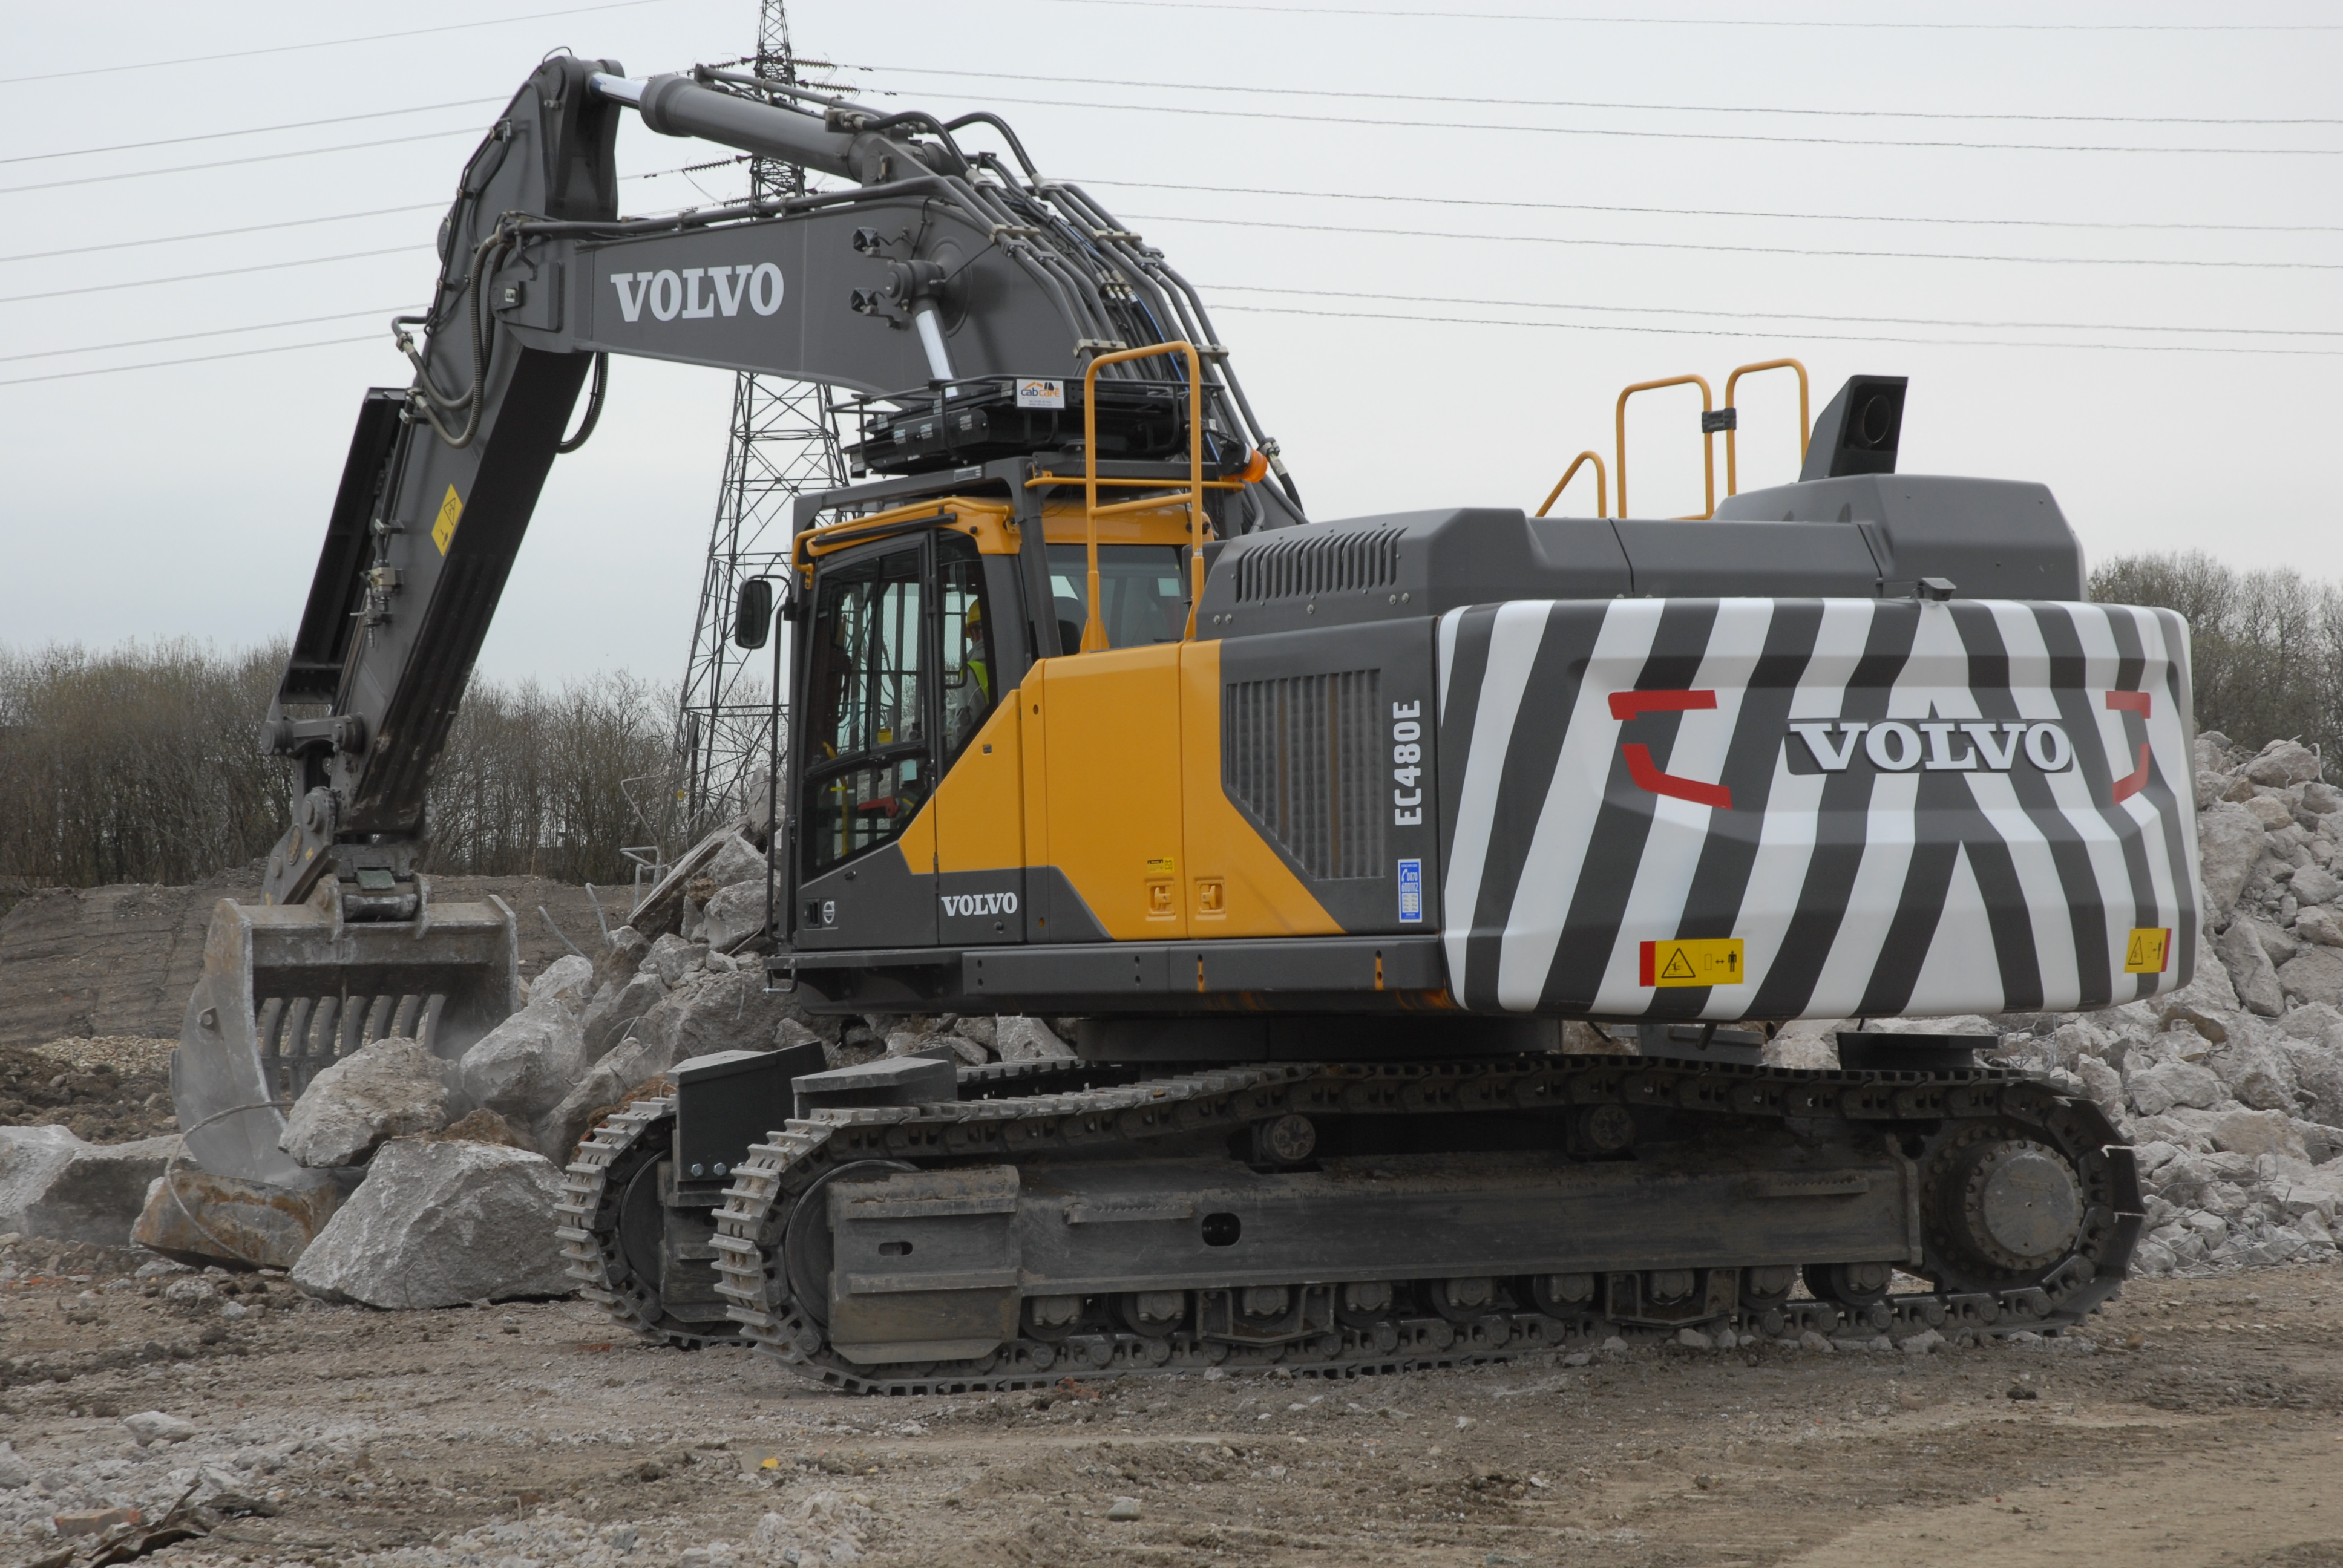 Another bespoke Volvo for Skillings Crushing Company - CEA